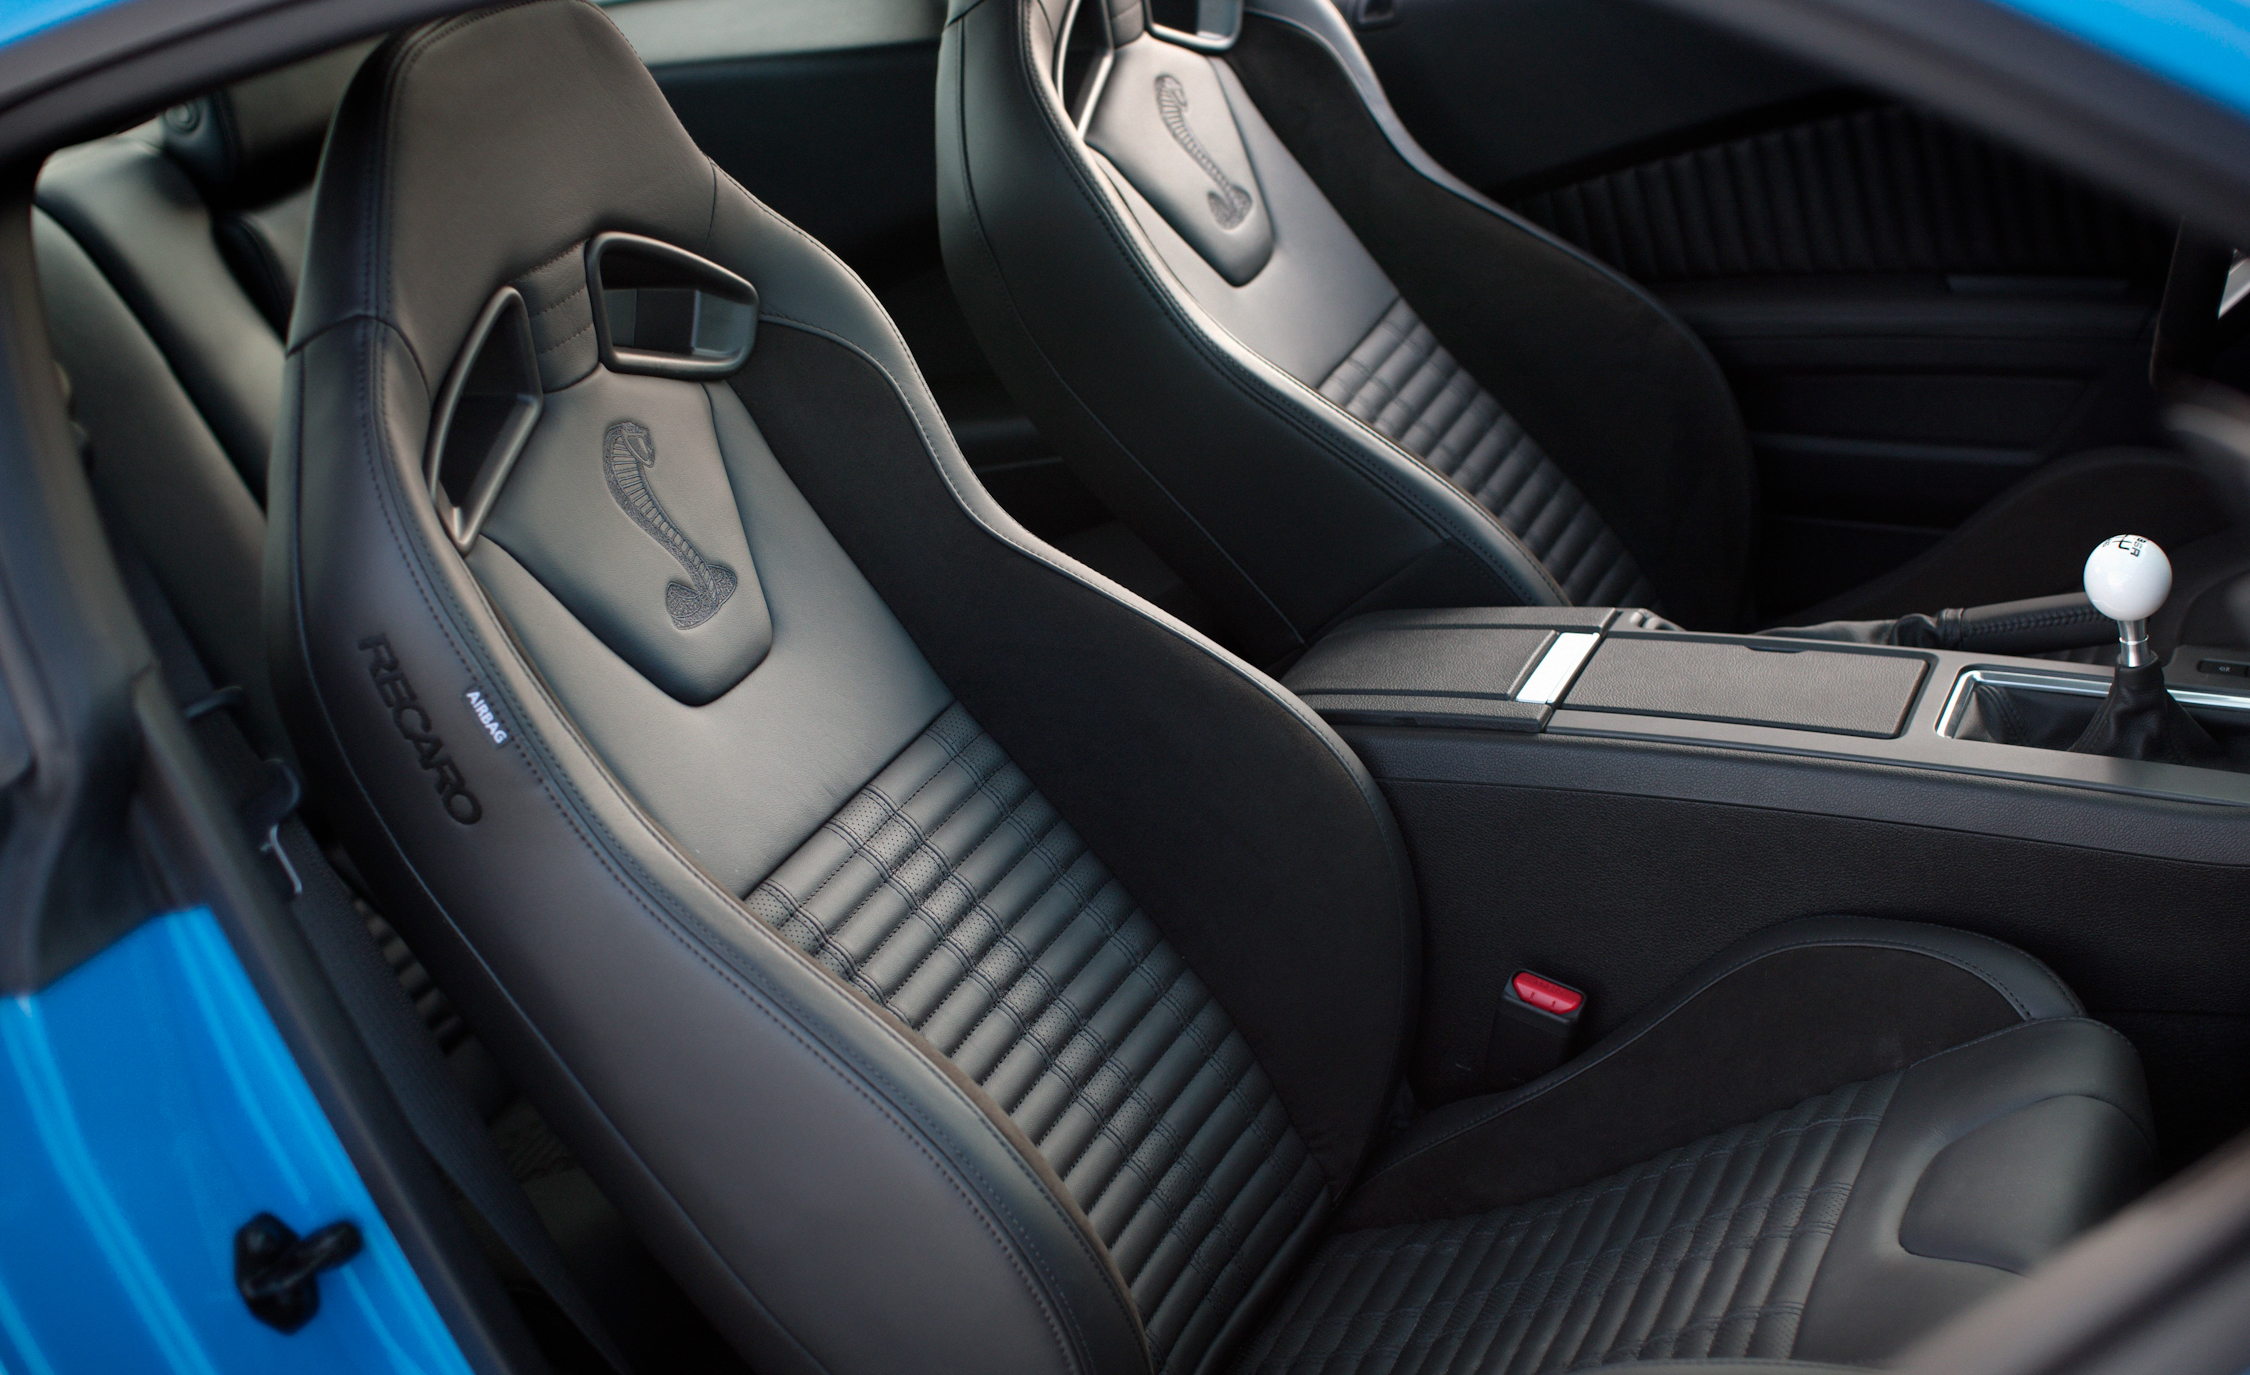 2013 Ford Mustang Shelby GT500 Interior Seats (View 30 of 47)